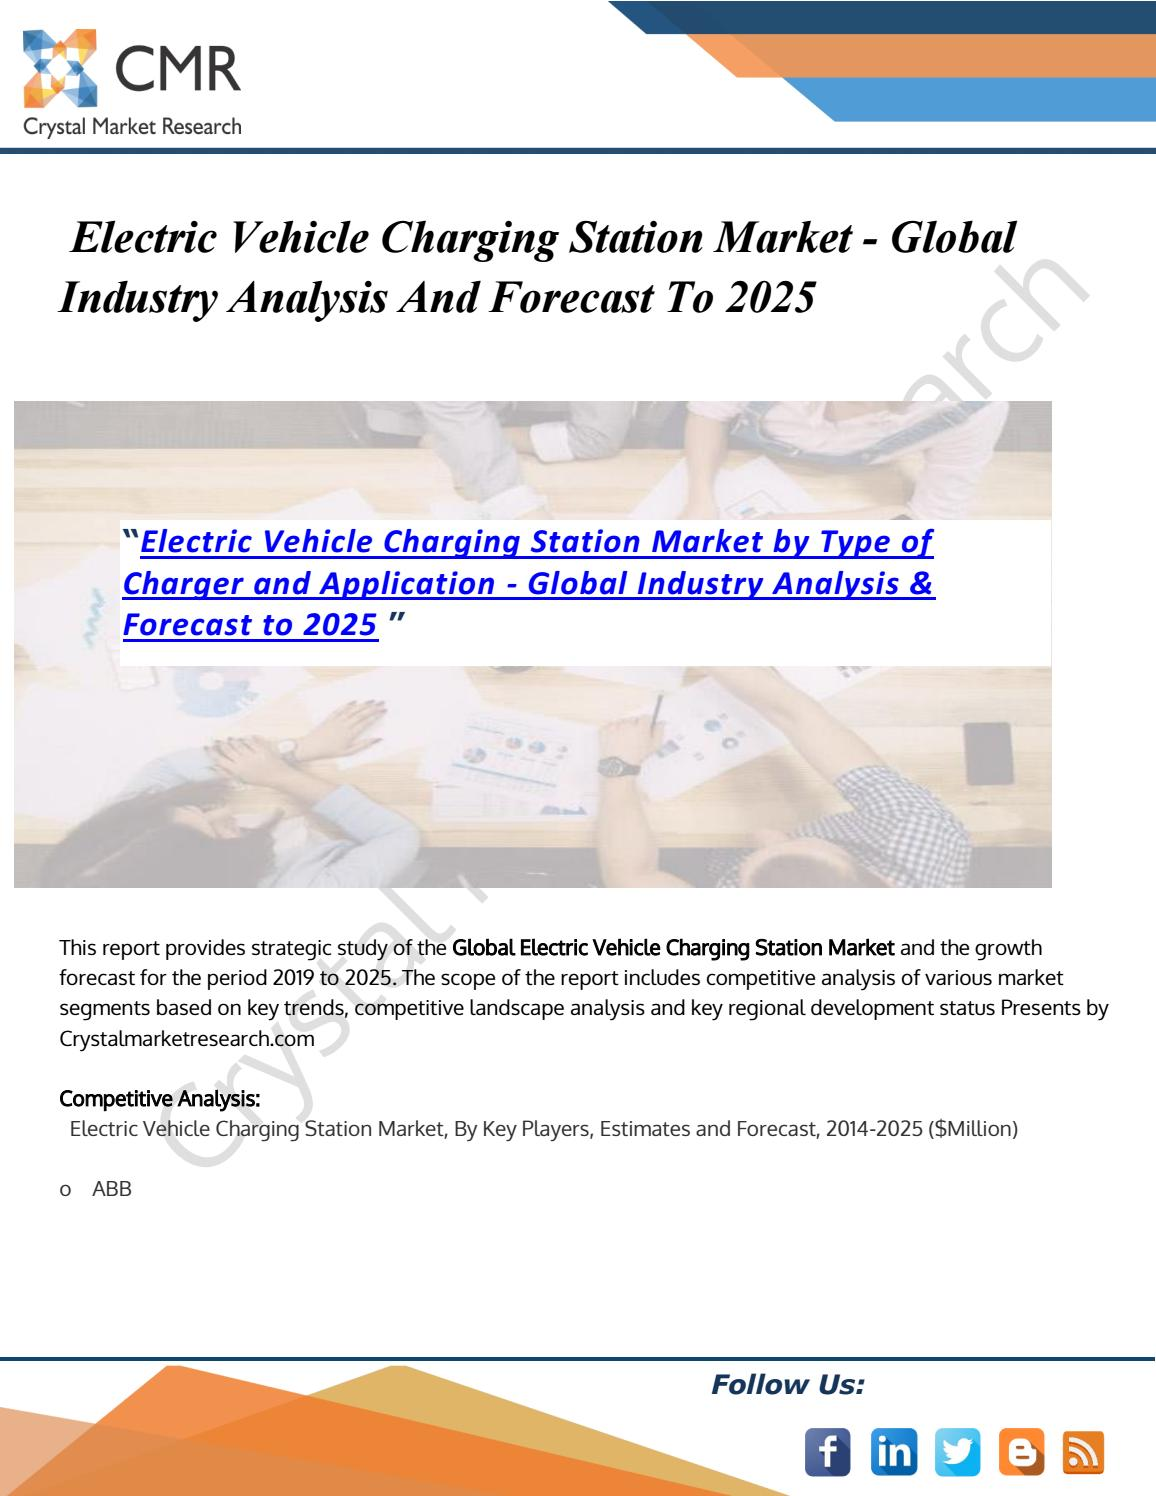 Electric Vehicle Charging Station Market By Crystalmarketresearch5 Issuu